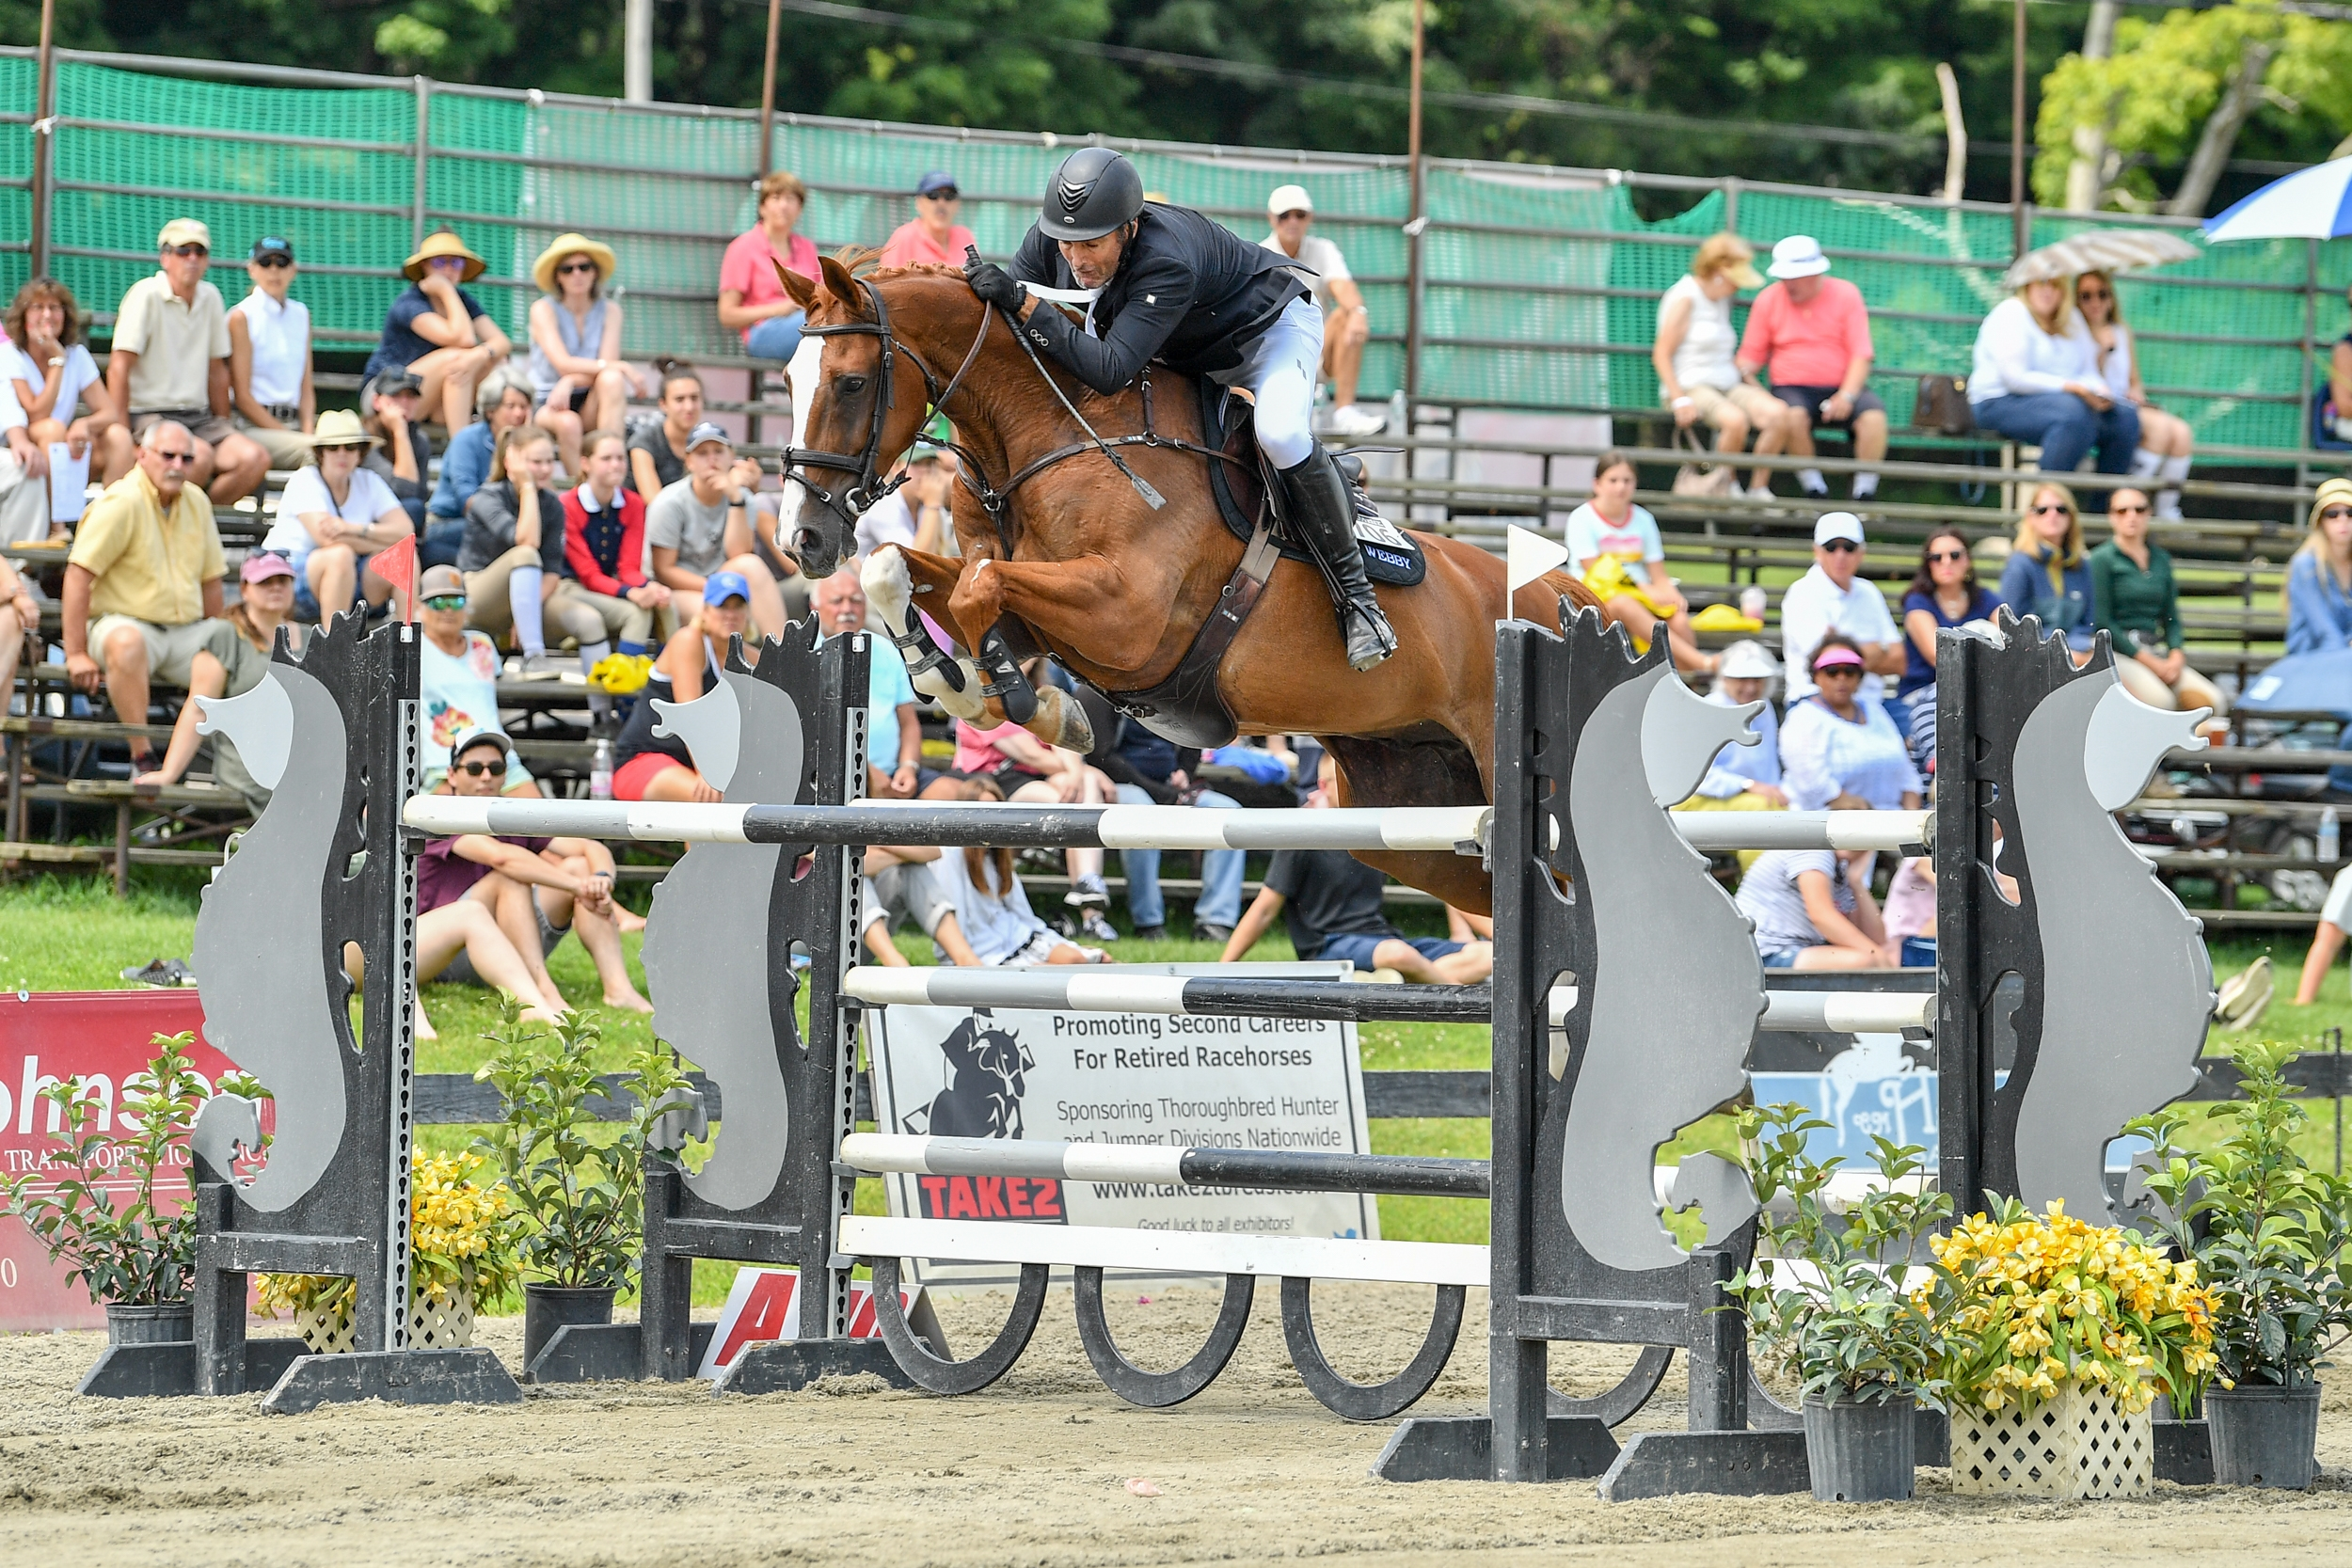 Second place in the $30,000 Manchester & the Mountains Grand Prix went to New Zealand's Kirk Webby and Brando du Rouet.<br><b>Photo by <a href='https://www.andrewryback.com/' target='_blank'>Andrew Ryback Photography</a></b>